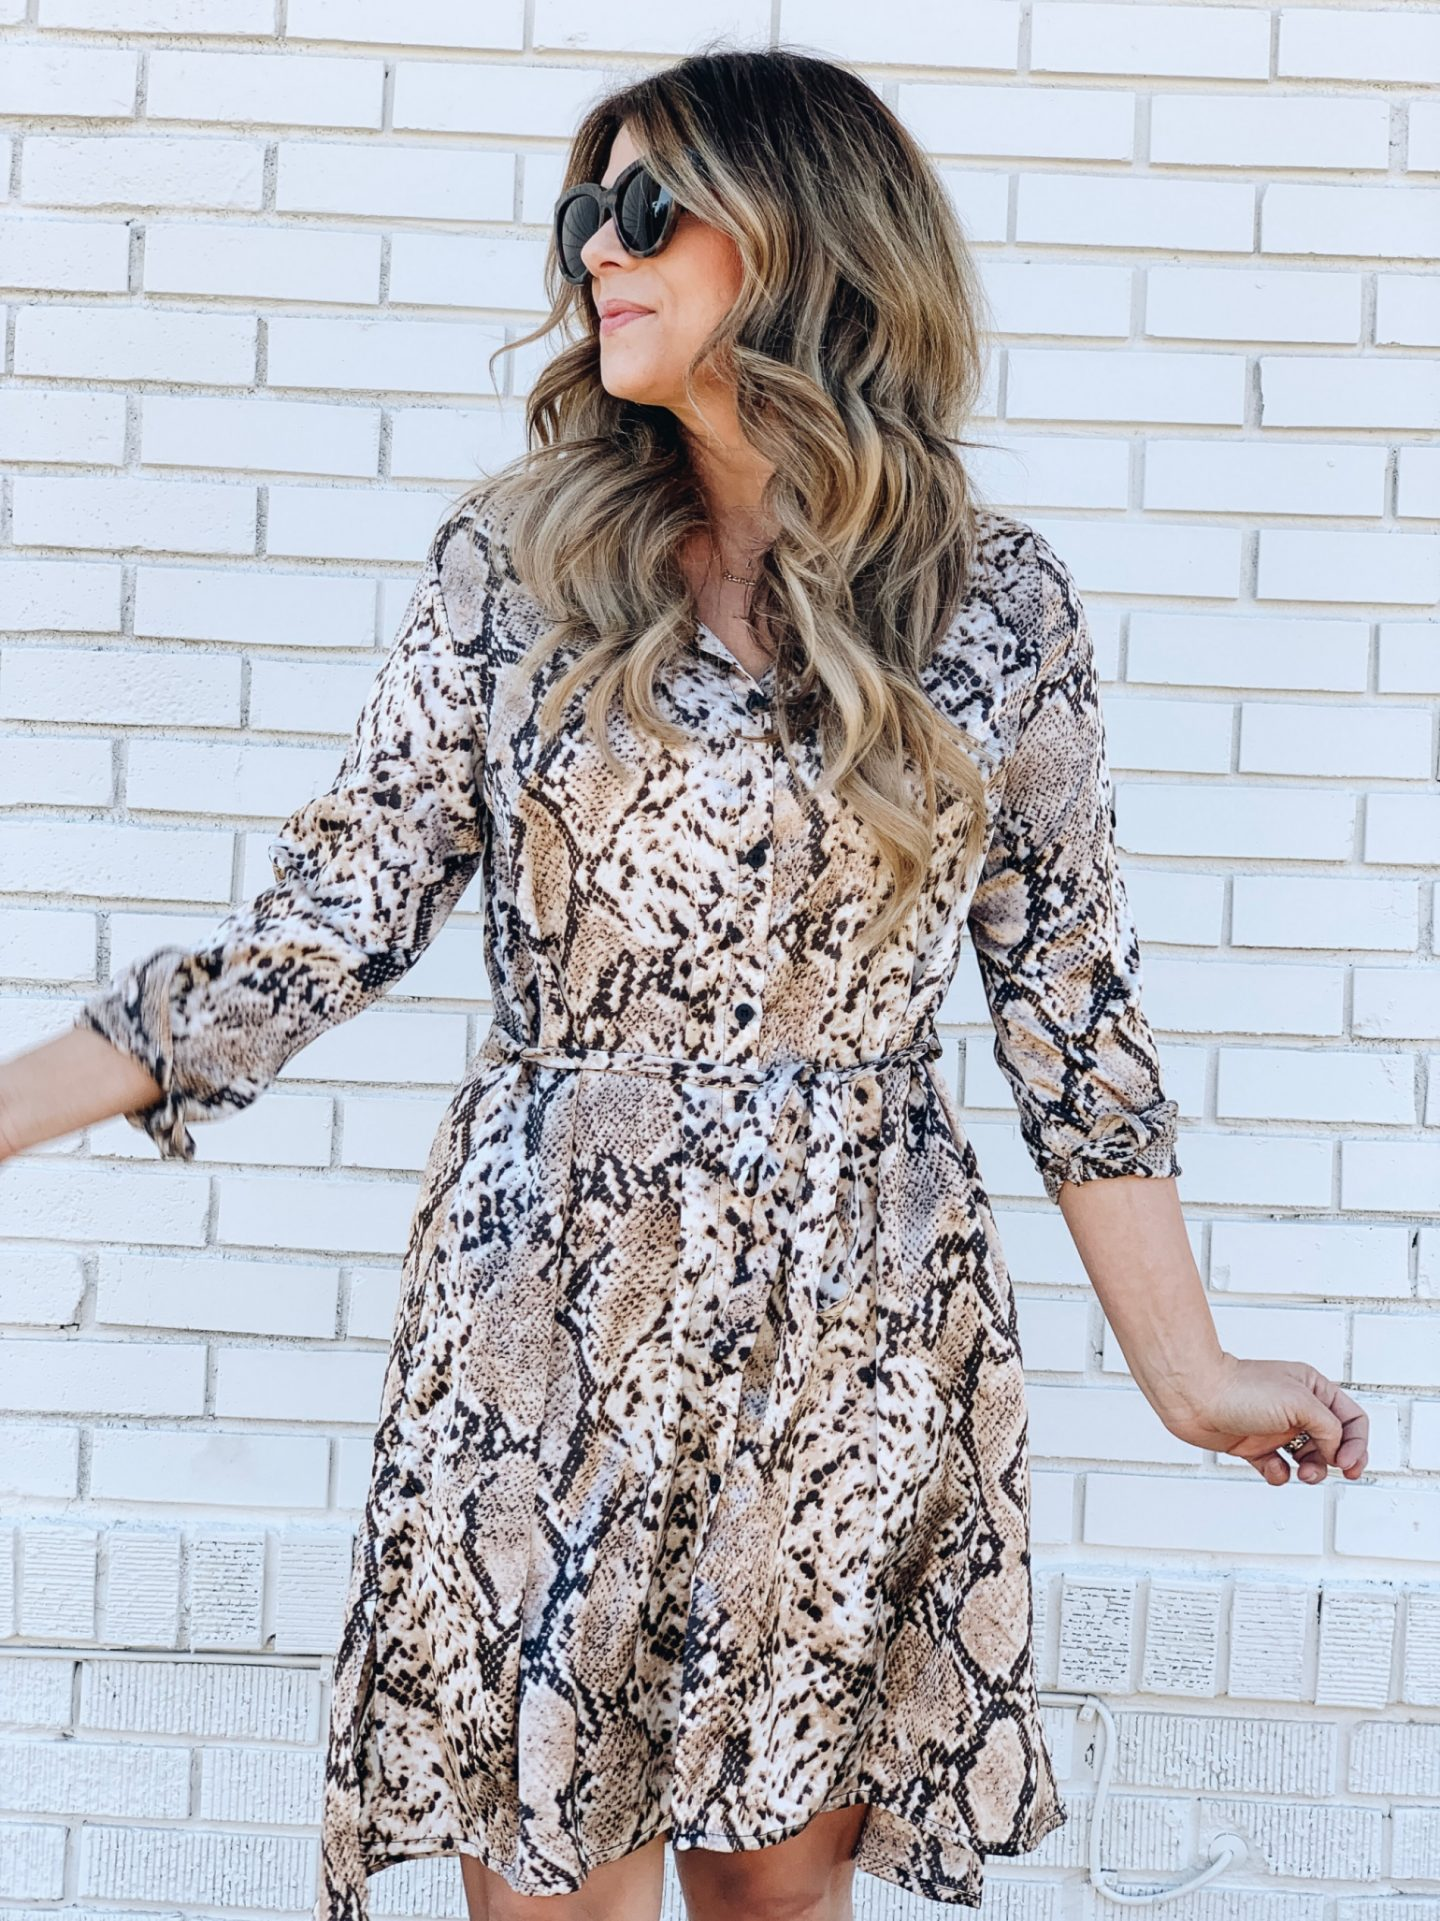 How to style a snakeskin dress, snakeskin, snake skin, nude heels, www.lindseymeek.com, https://www.beauandarrowusa.com/collections/shoplindsey/products/the-valerie-dress